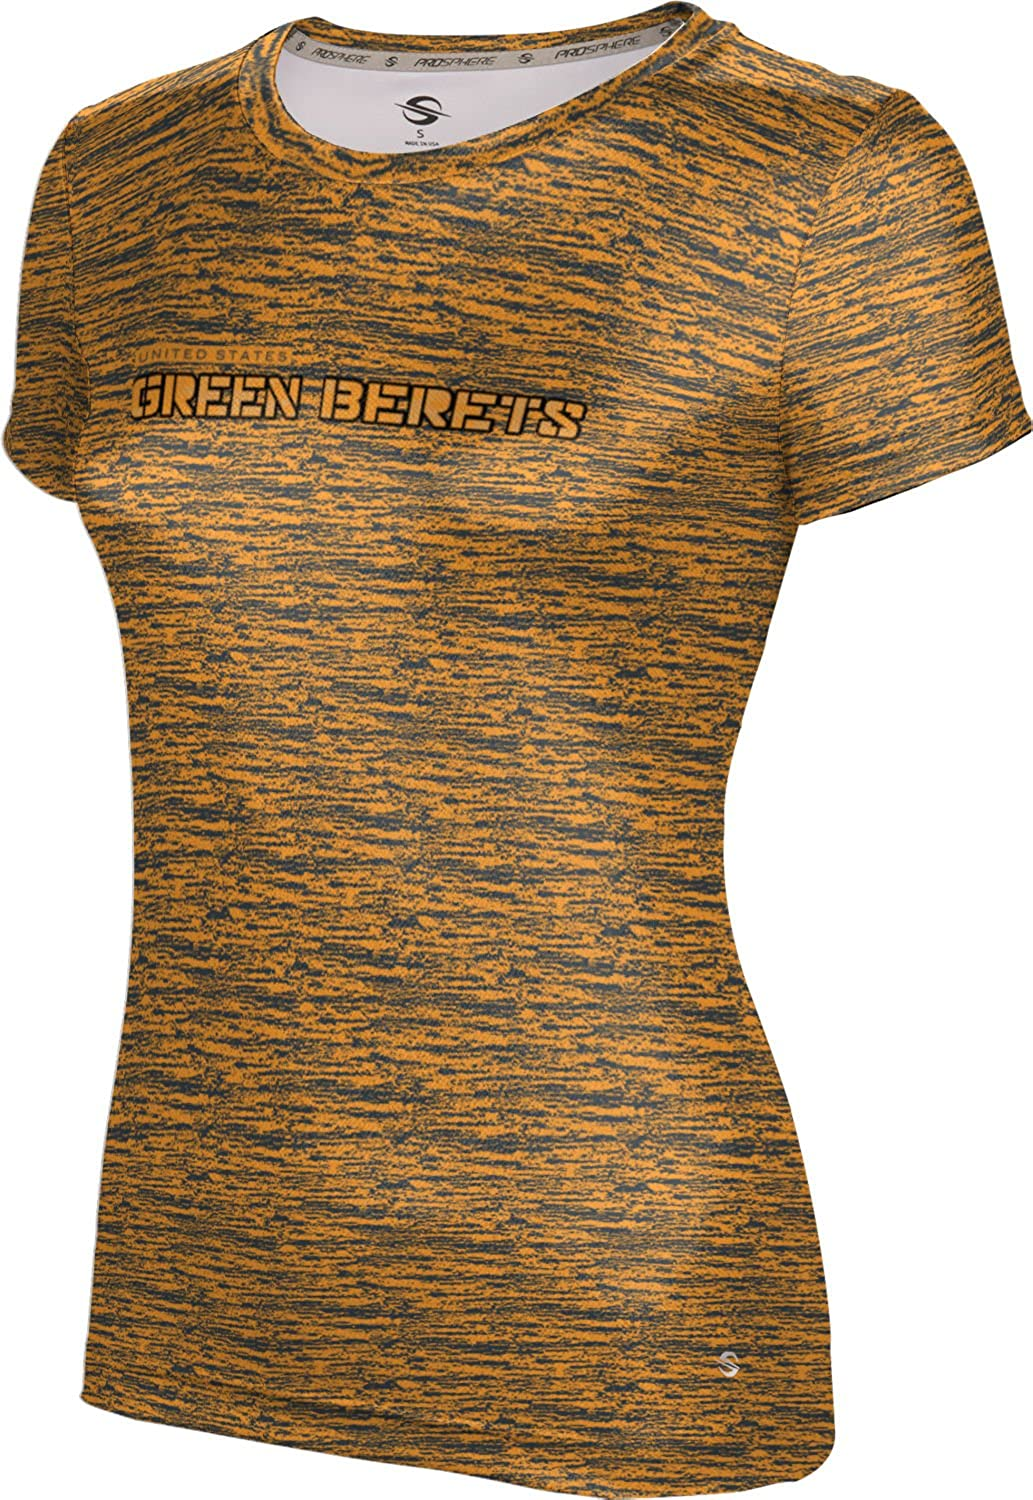 ProSphere Women's Green Berets Military Brushed Tech Tee